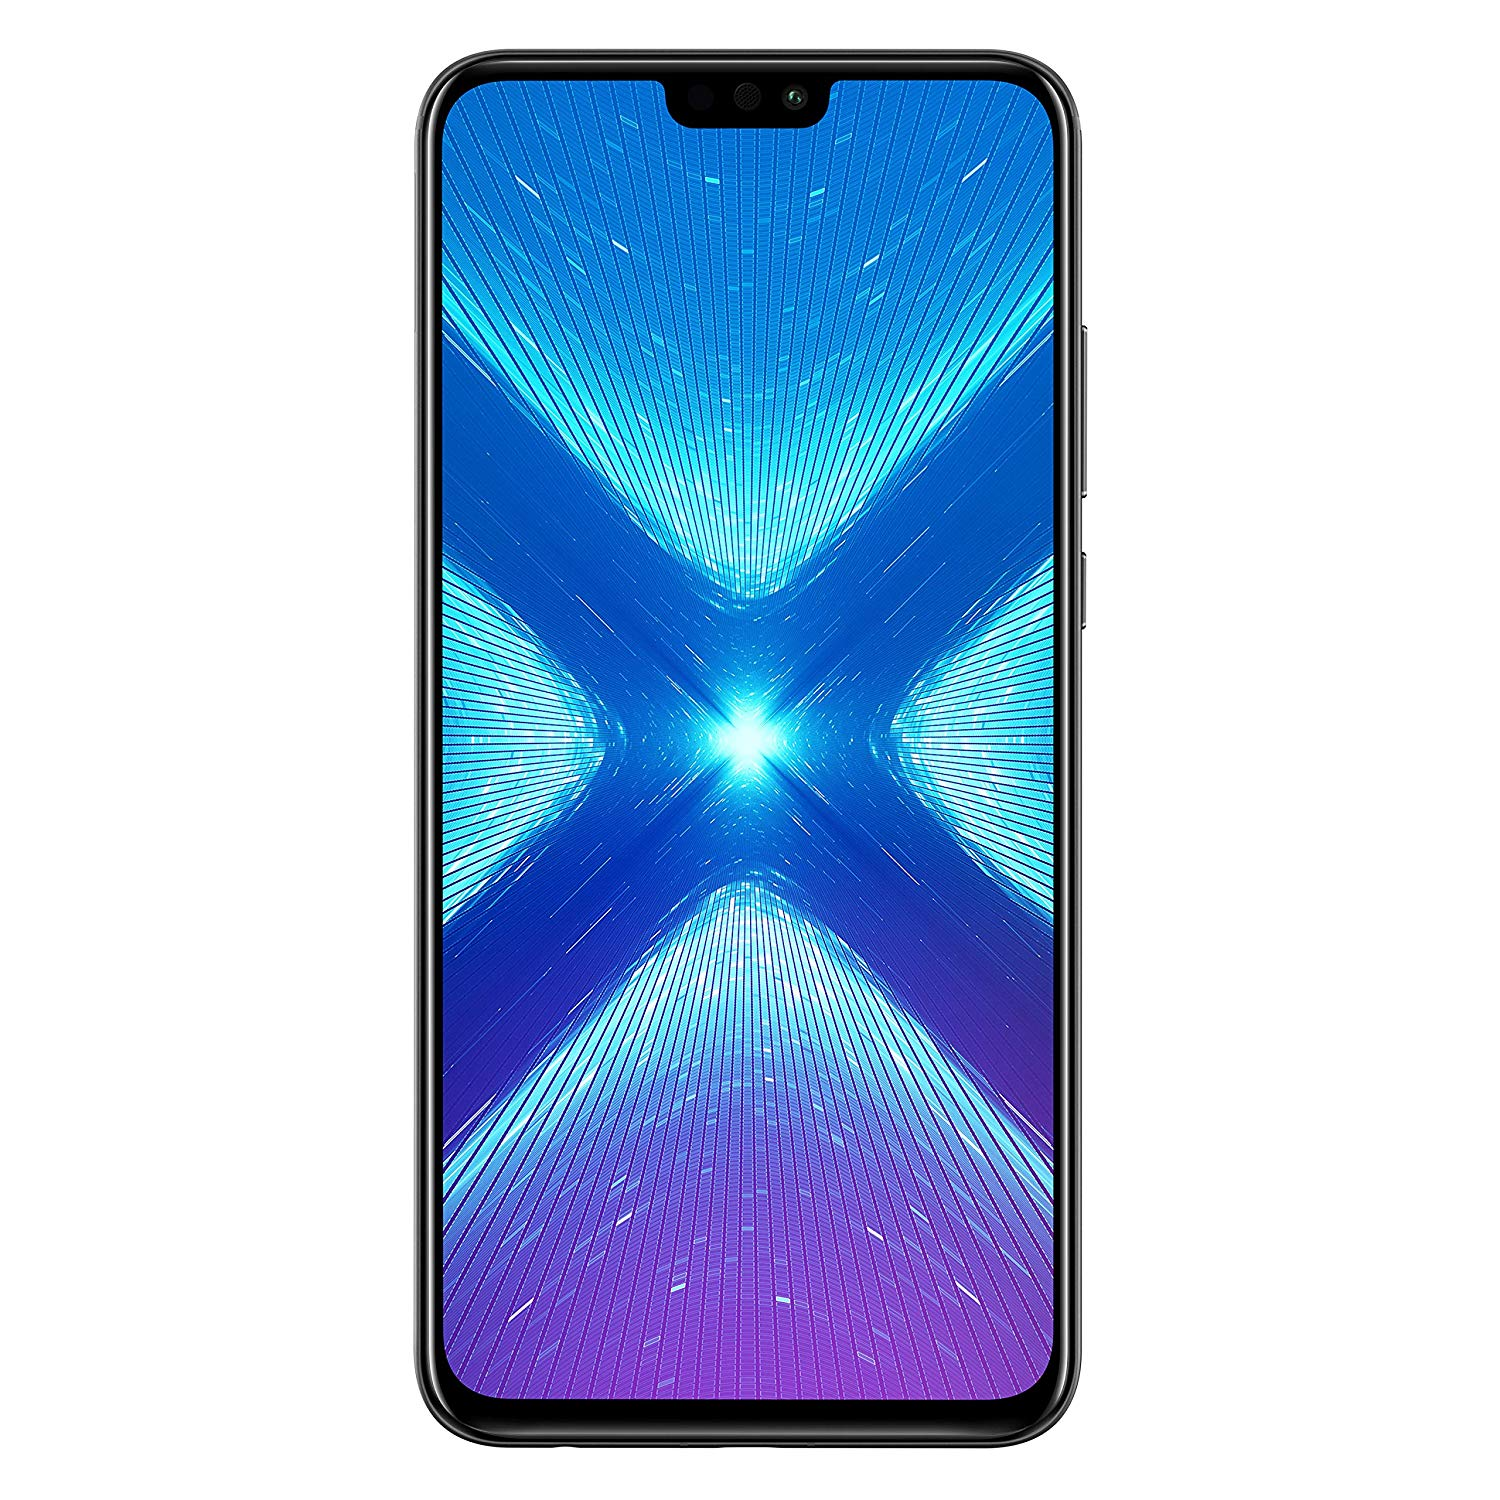 download HONOR 8X Photos Images and Wallpapers MouthShutcom 1500x1500